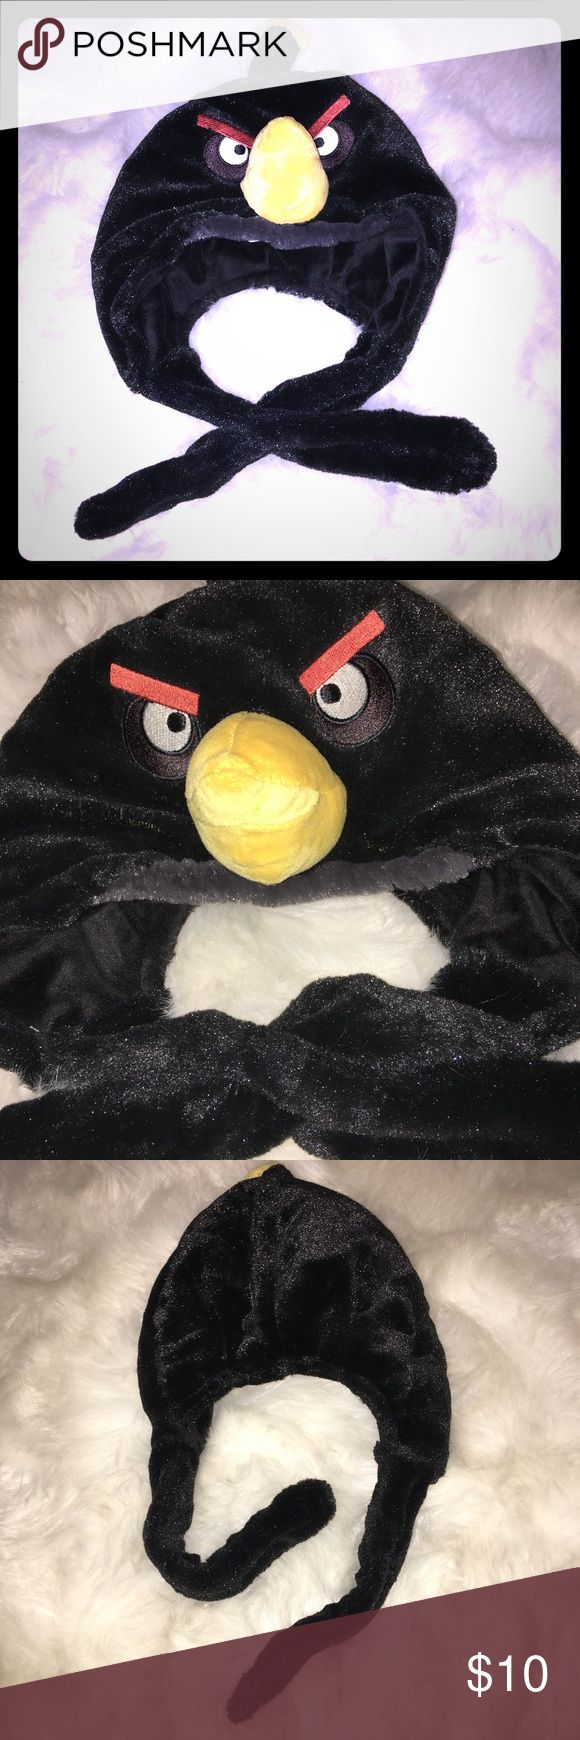 Angry Birds Plush, Novelty Hat - Black Bird Angry Birds Plush, Novelty Hat - Black Bird. In good preowned condition. ❌Sorry, No Trades❌ Accessories Hats